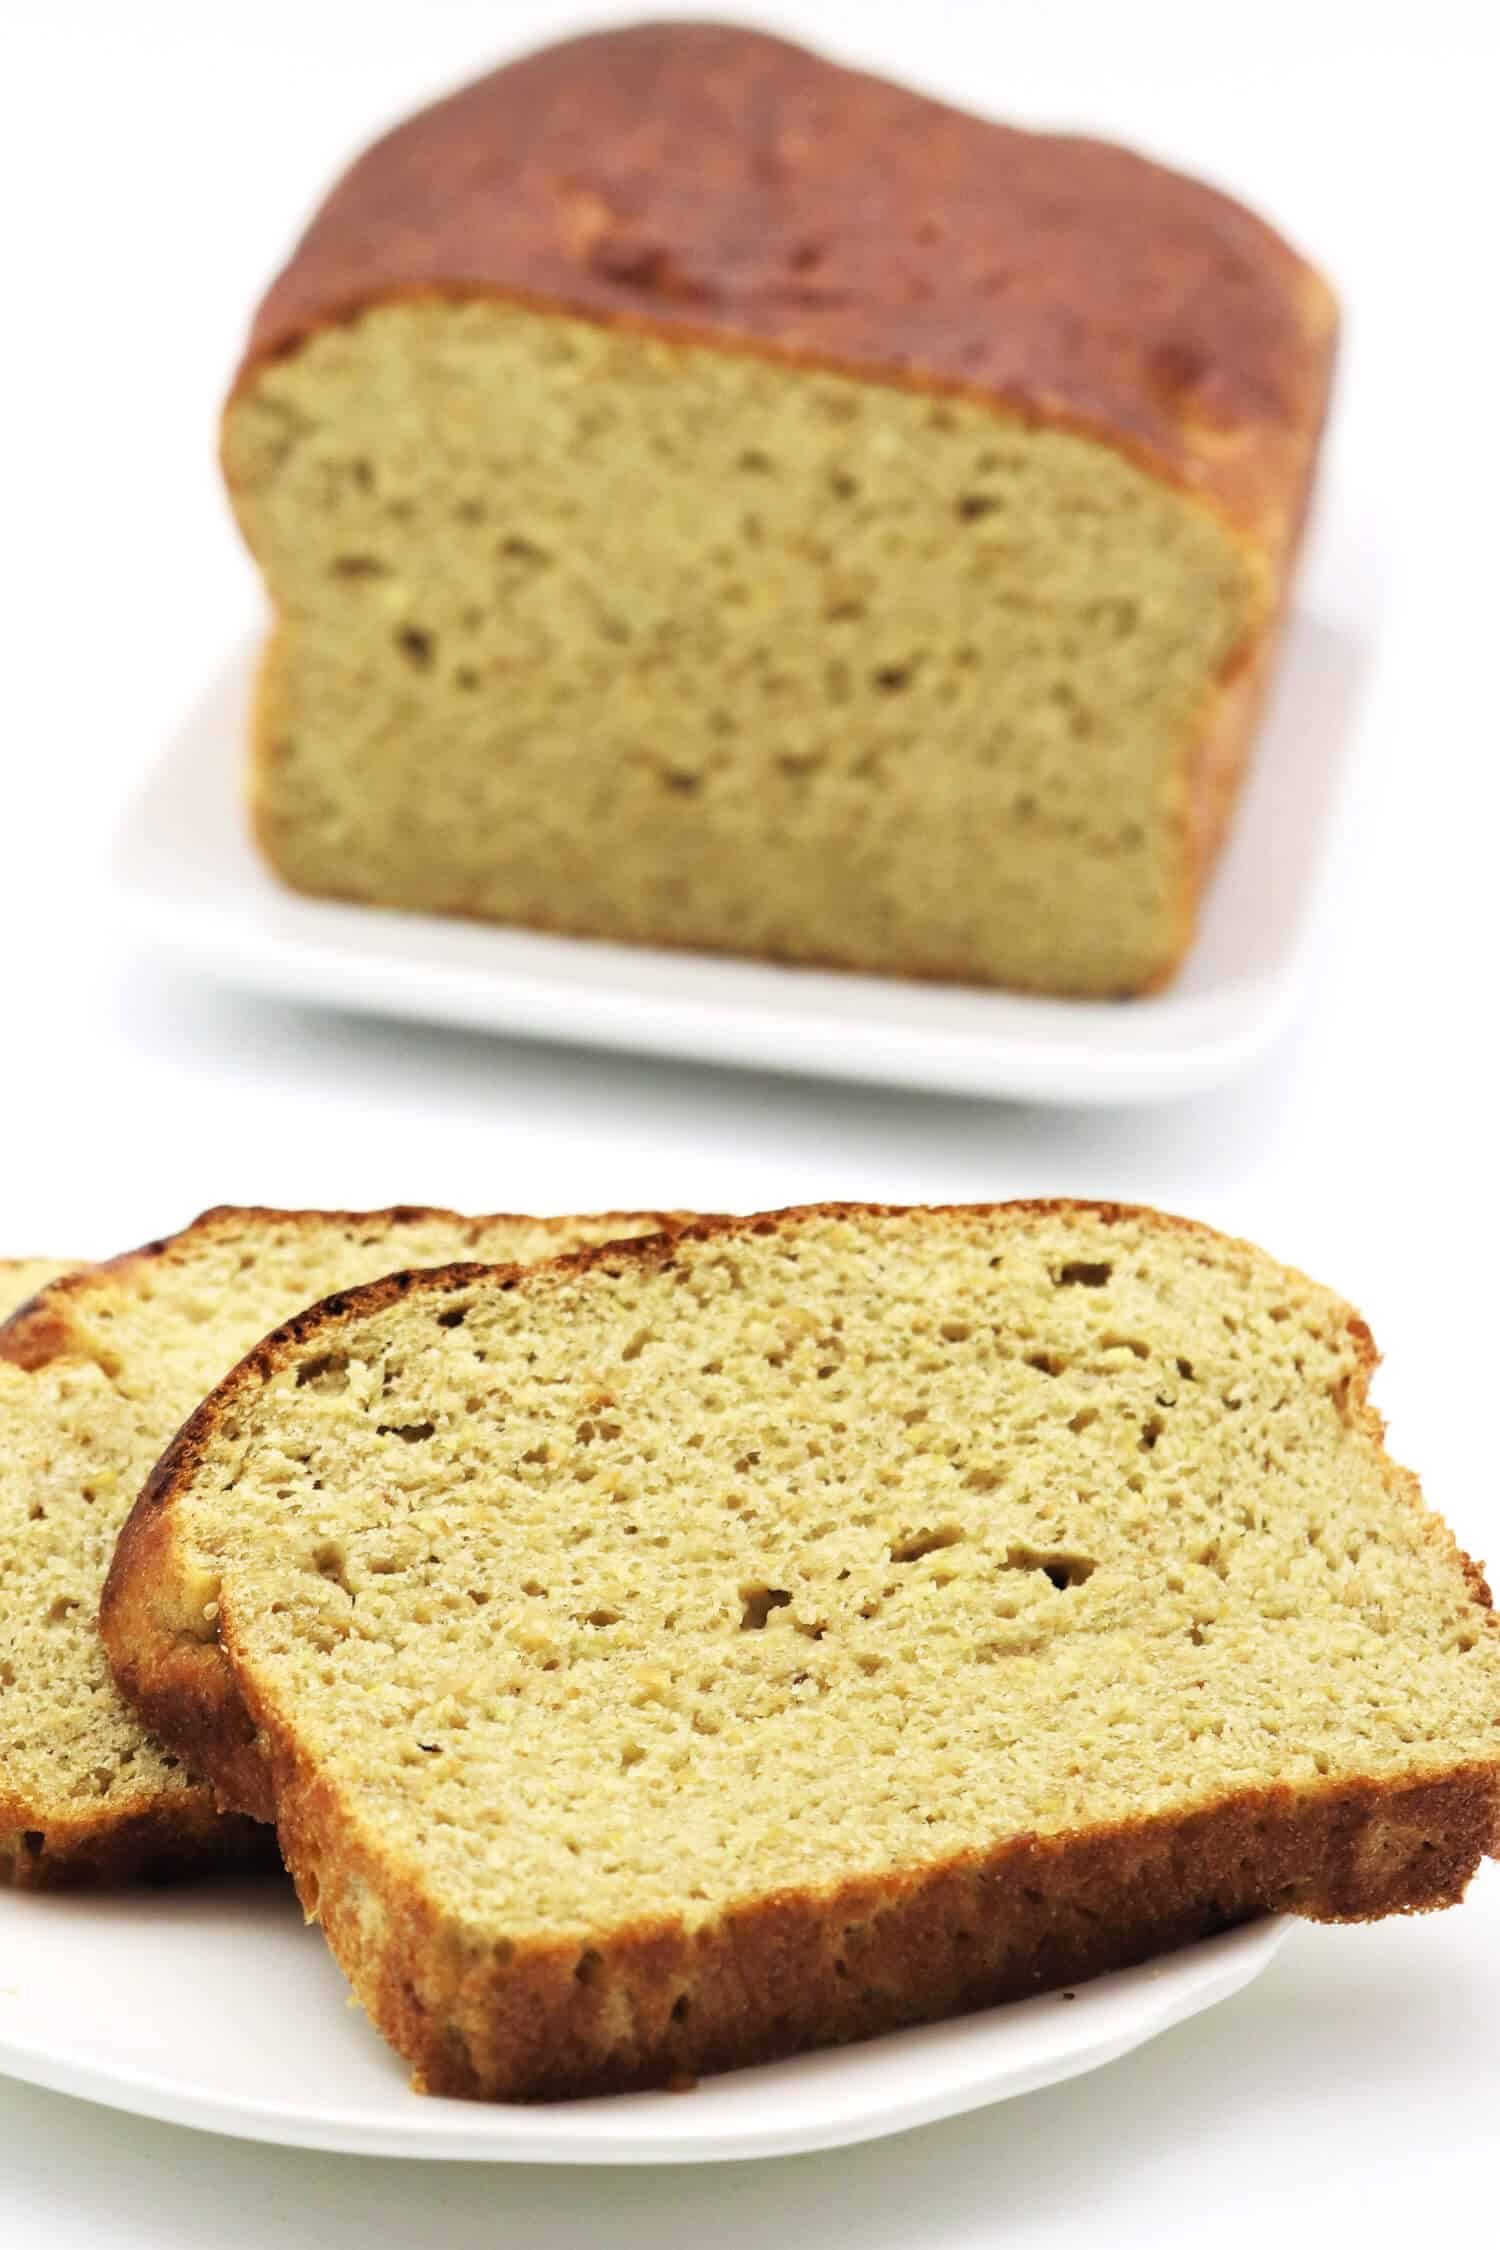 Low Carb Brot mit Gluten backen